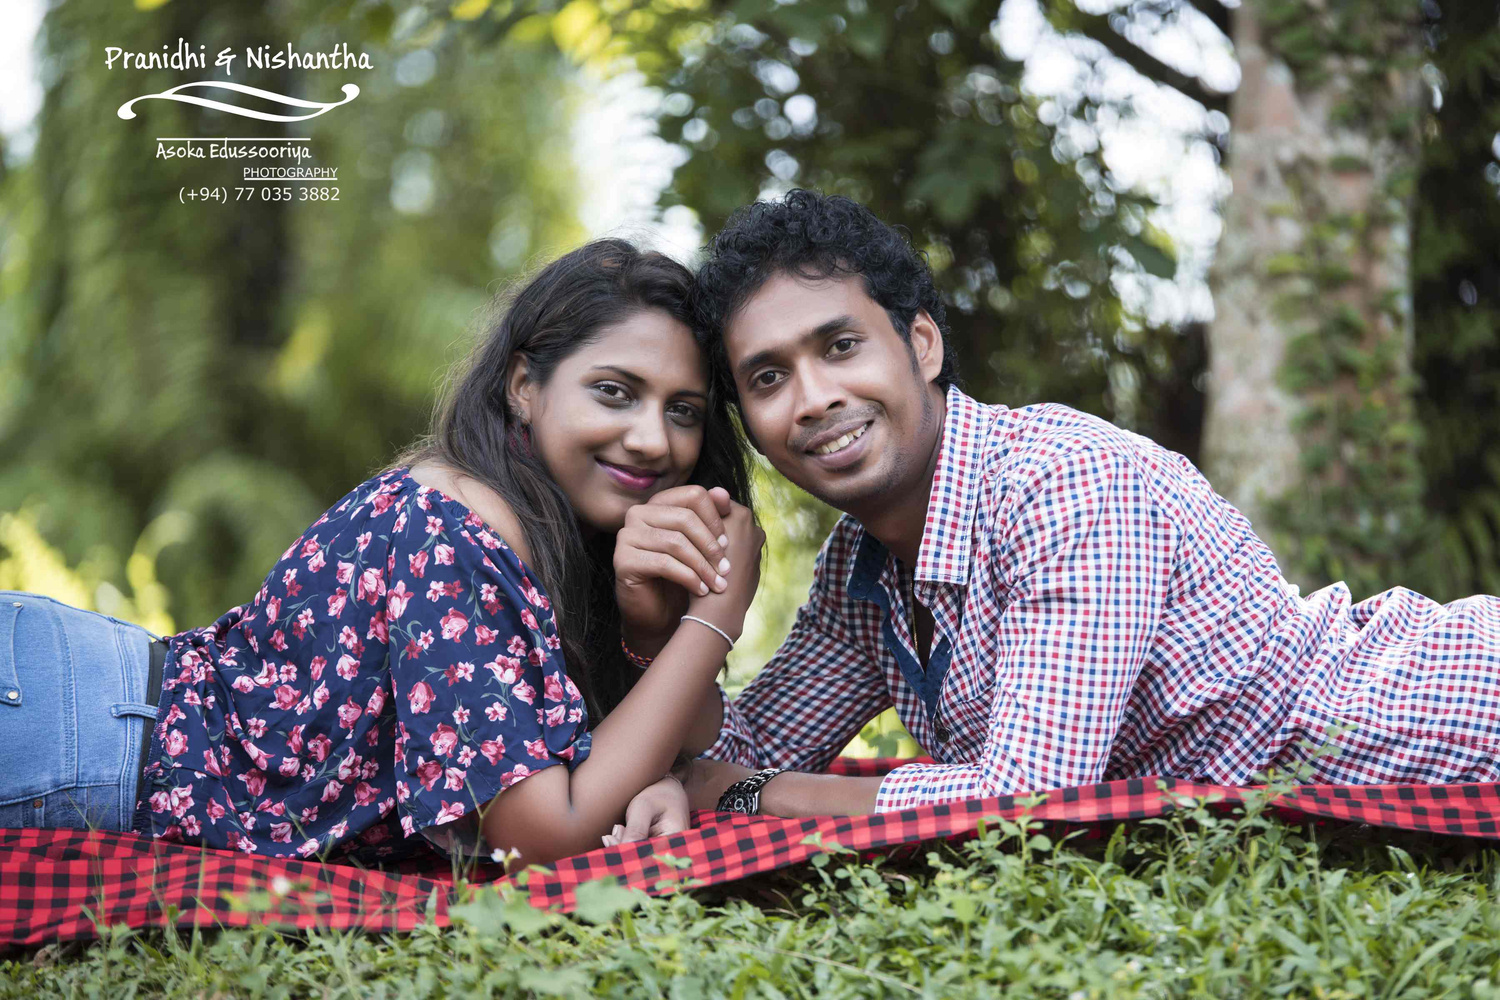 Engagement shoot by Asoka Edussooriya